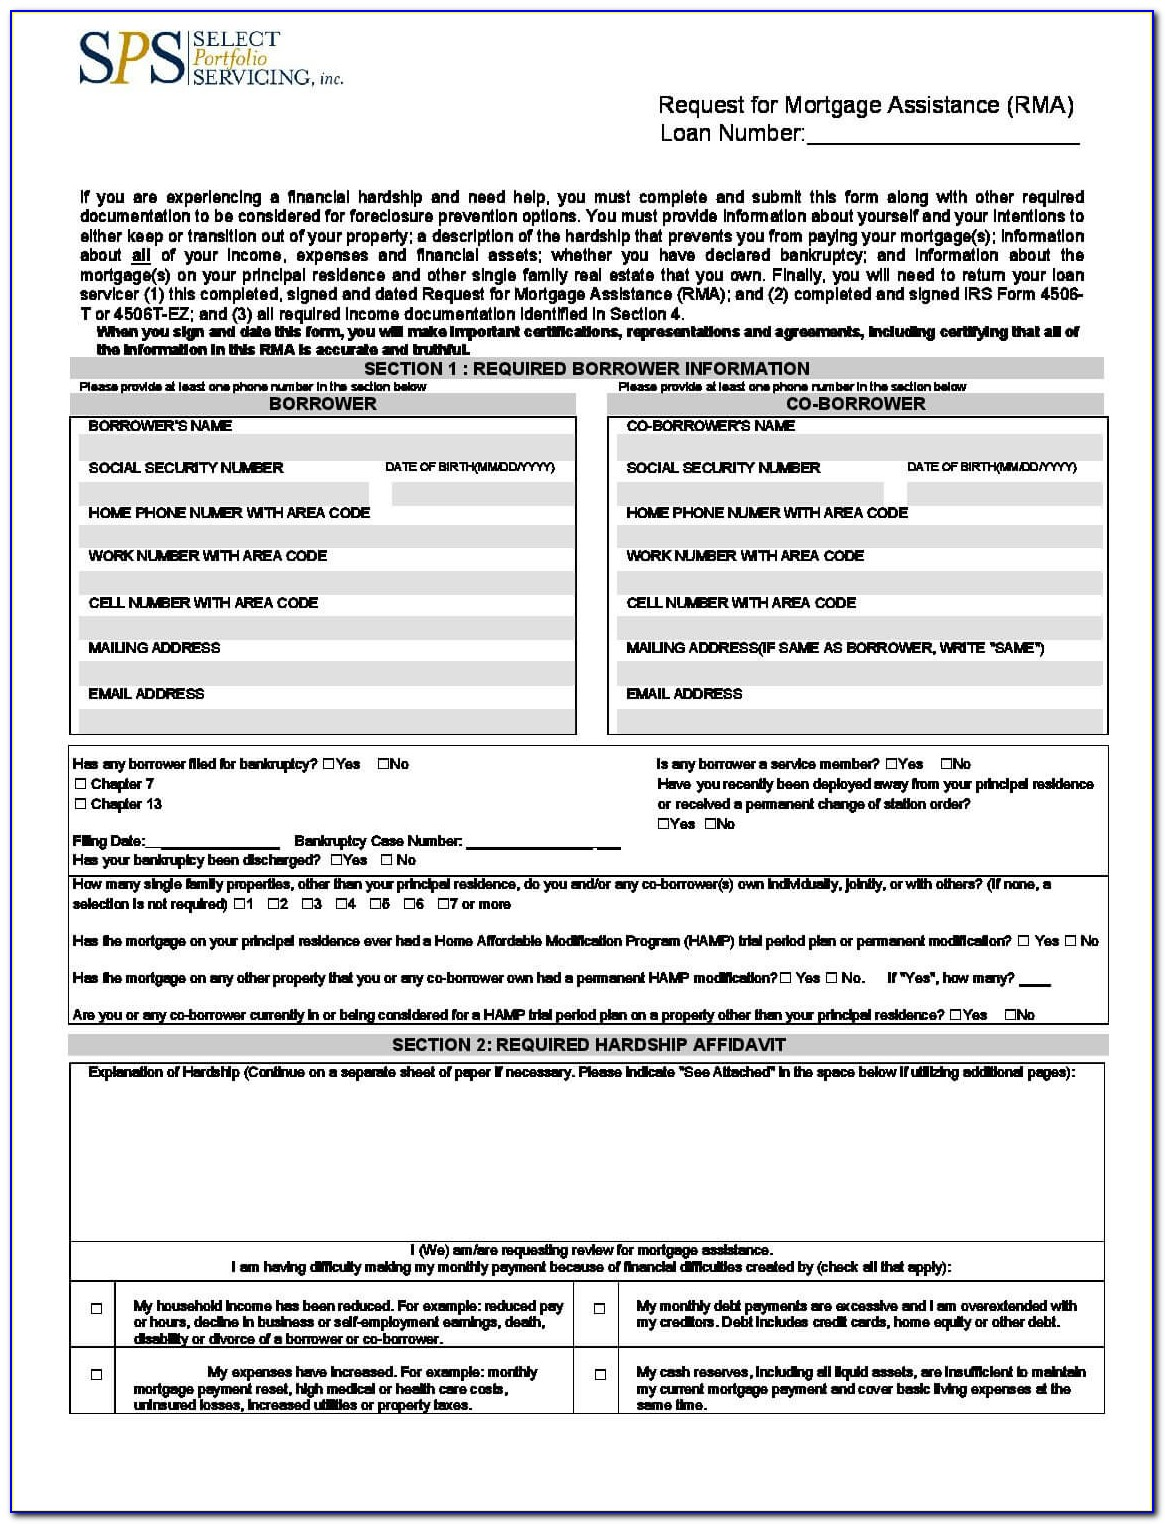 Wells Fargo Home Mortgage Modification Forms